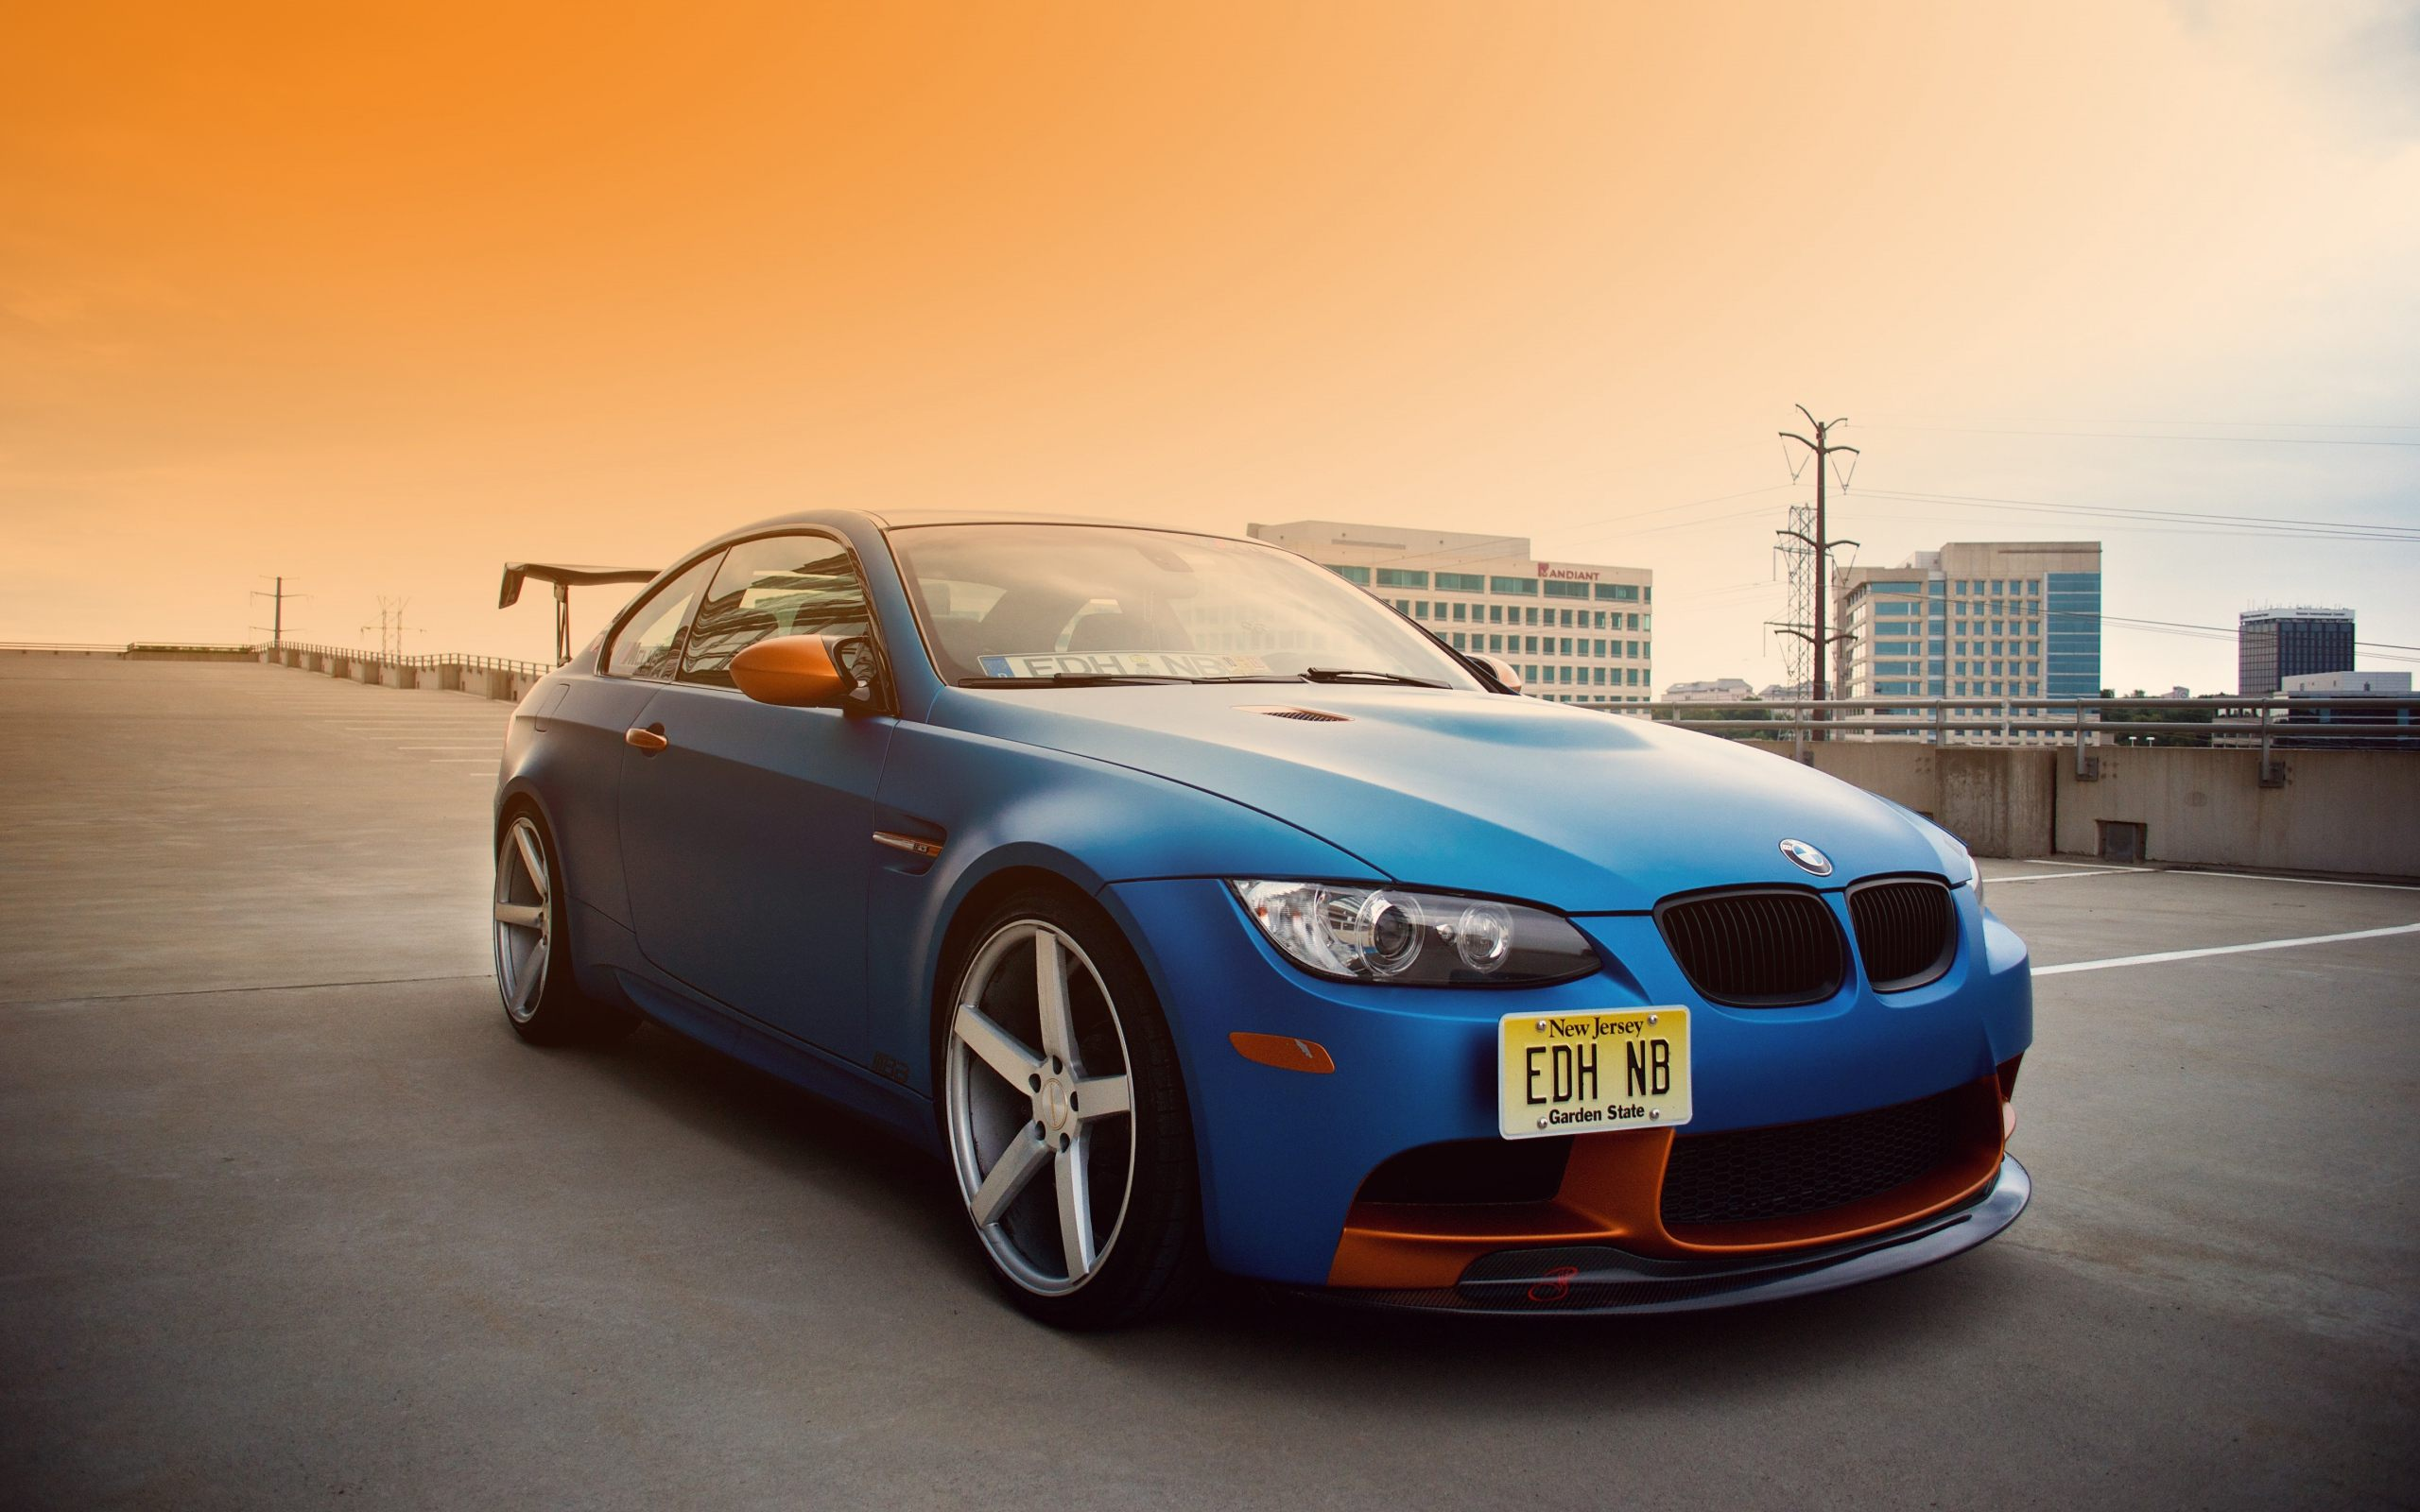 BMW E92 M3 Blue Car Wallpaper HD For Desktop amp Mobile 2560x1600